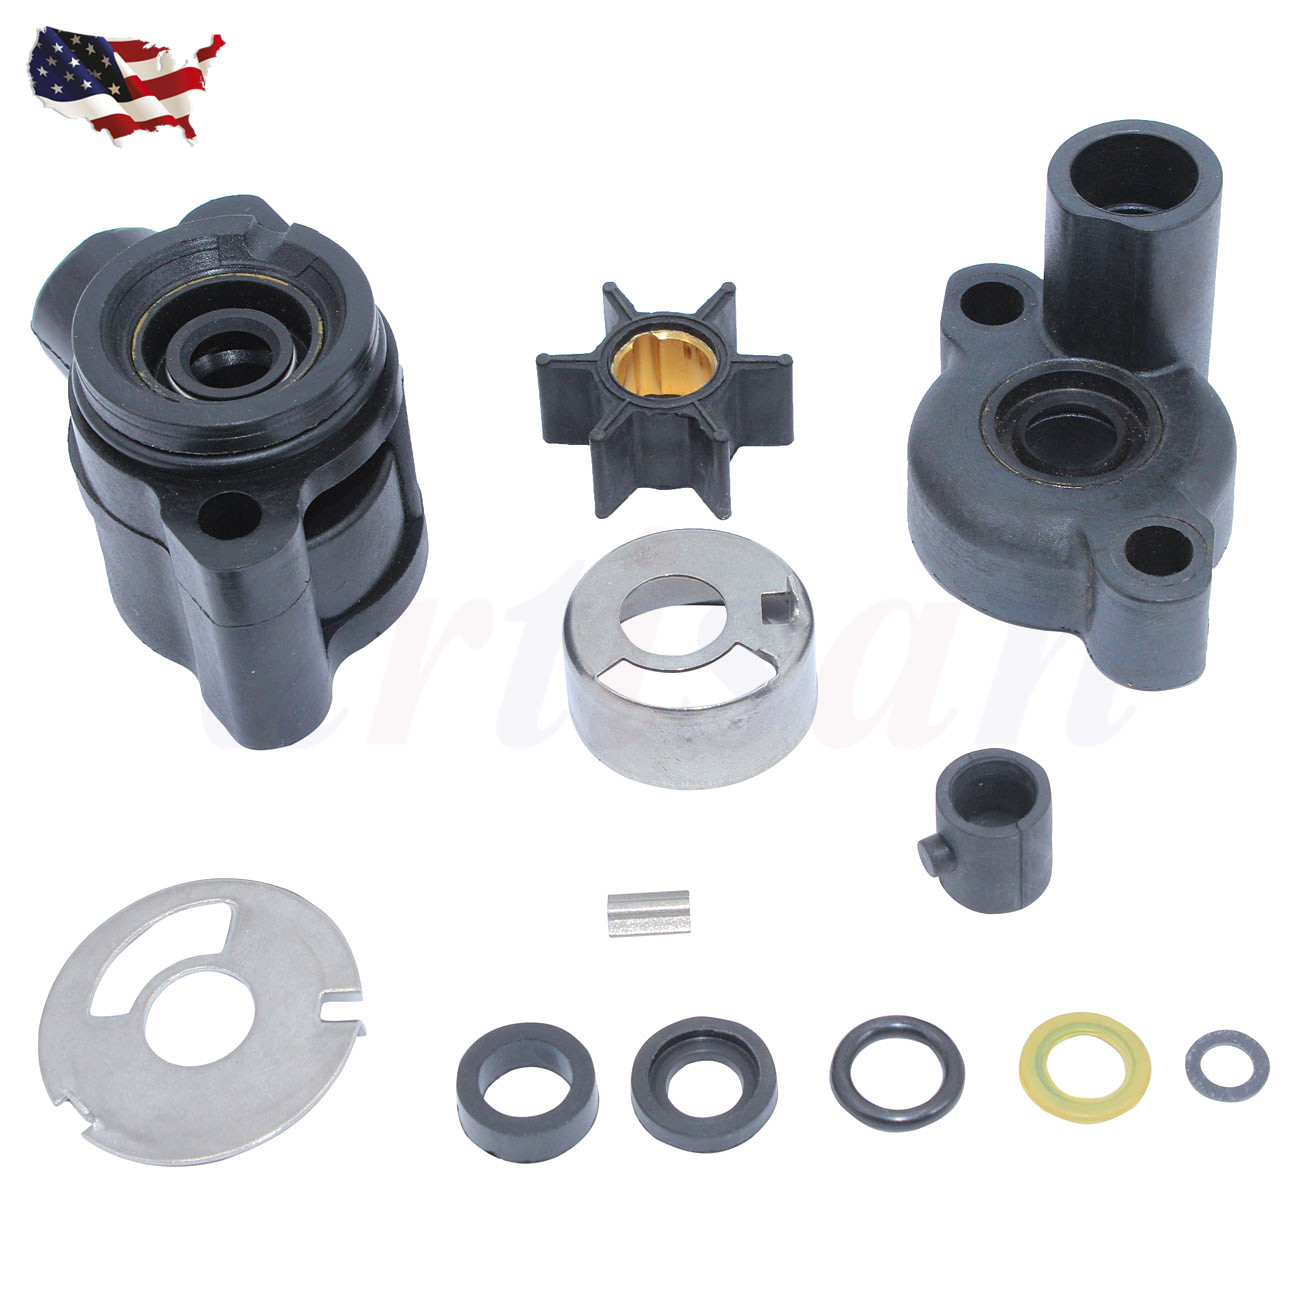 Mercury Marine//Mercruiser New OEM WATER PUMP KIT 46-70941A3